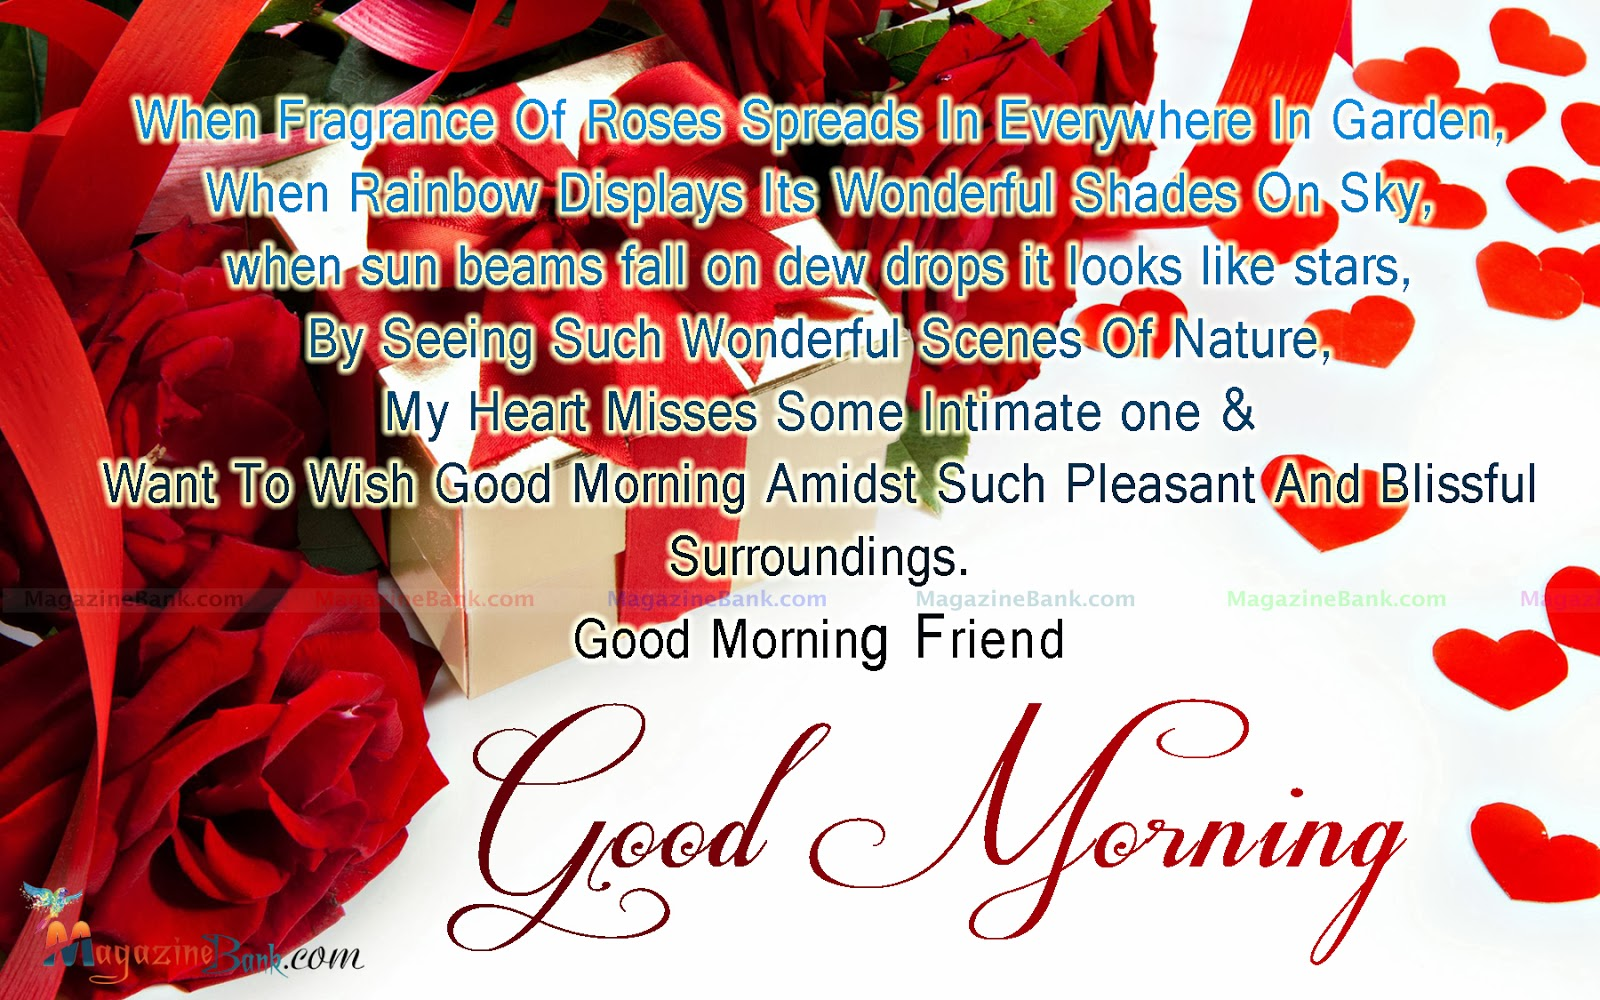 Good Morning Quotes For Friends: Best Friend Quotes Good Morning. QuotesGram